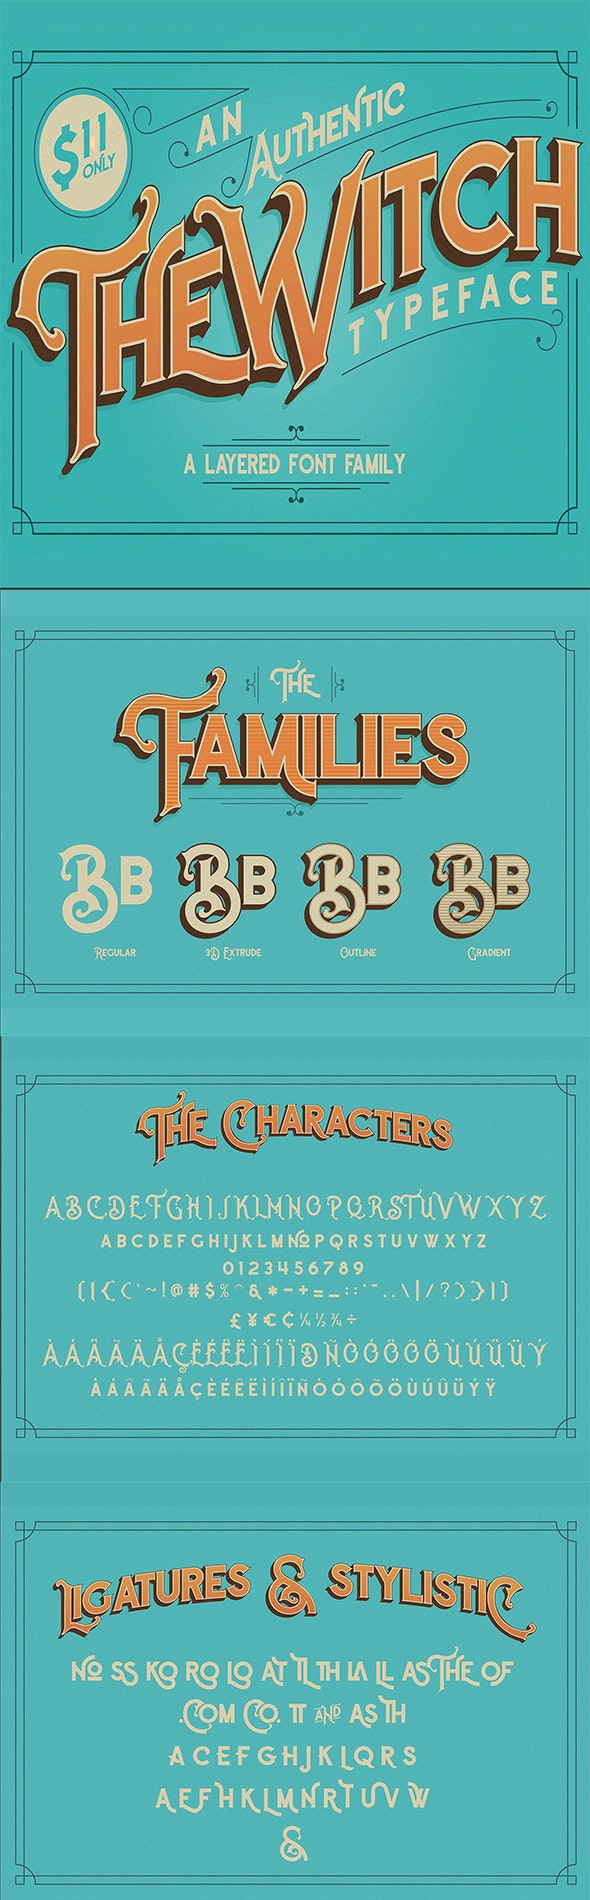 The Witch - Serif Fonts